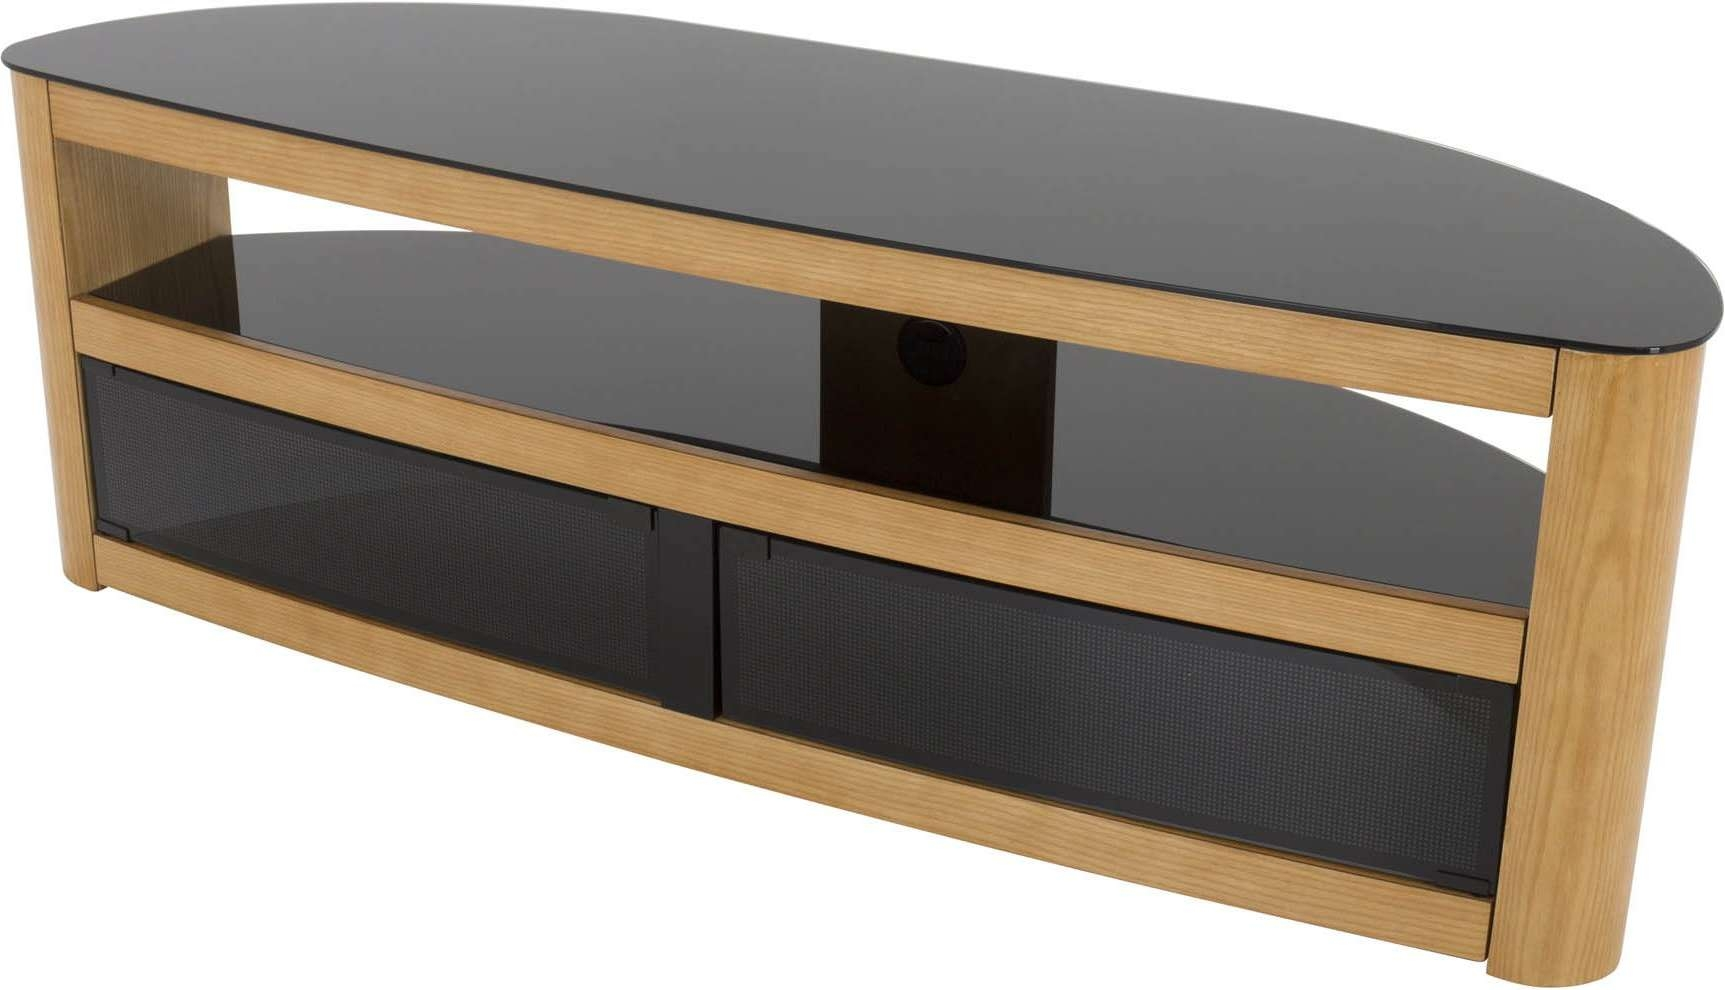 Avf Fs1500Buro Tv Stands Pertaining To Tv Stands In Oak (View 4 of 15)